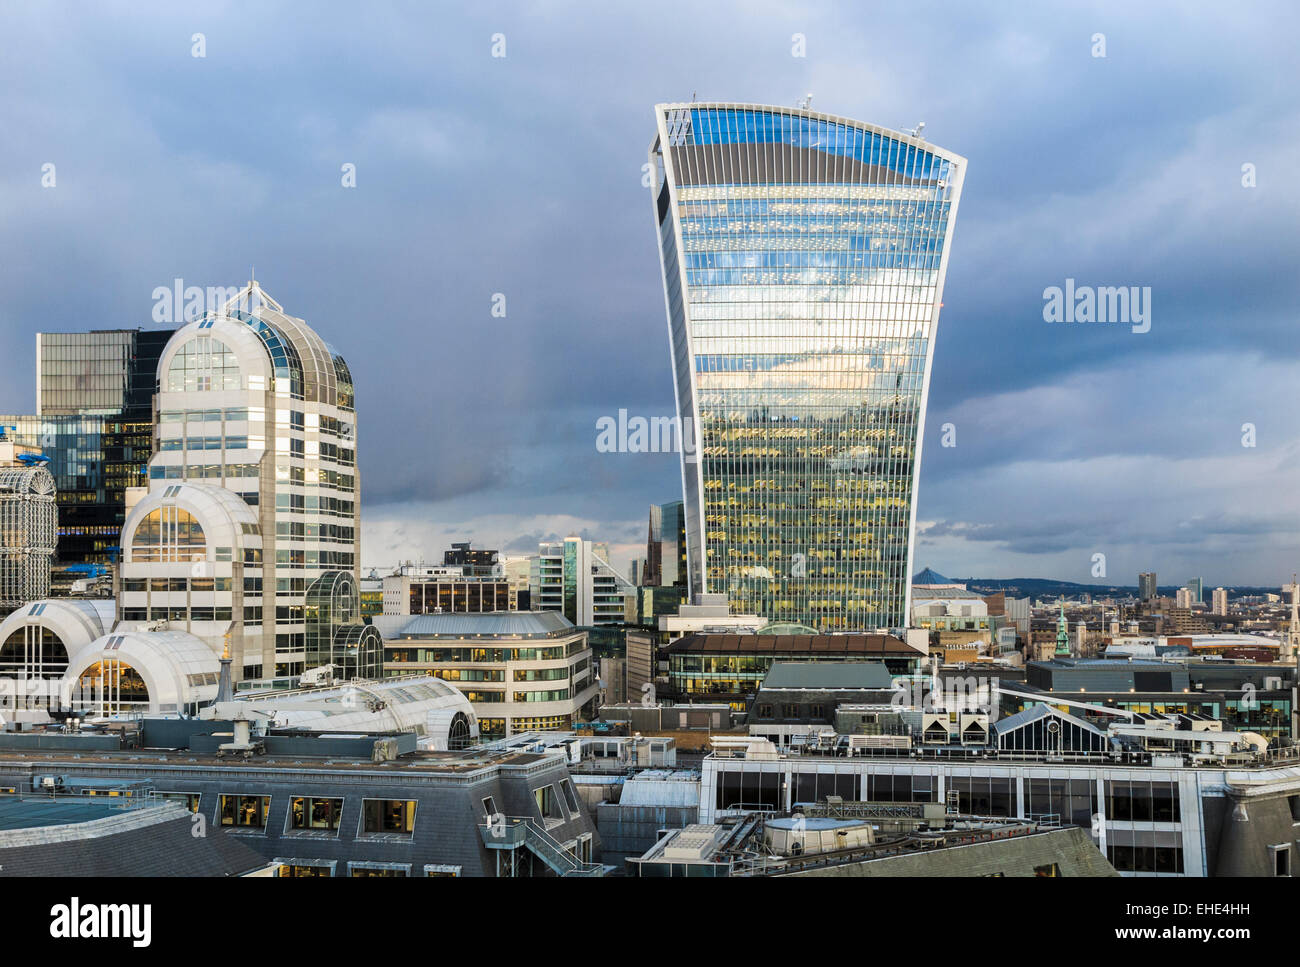 Sightseeing in the capital: The iconic Walkie-Talkie building and art deco 20 Gracechurch Street, City of London - Stock Image